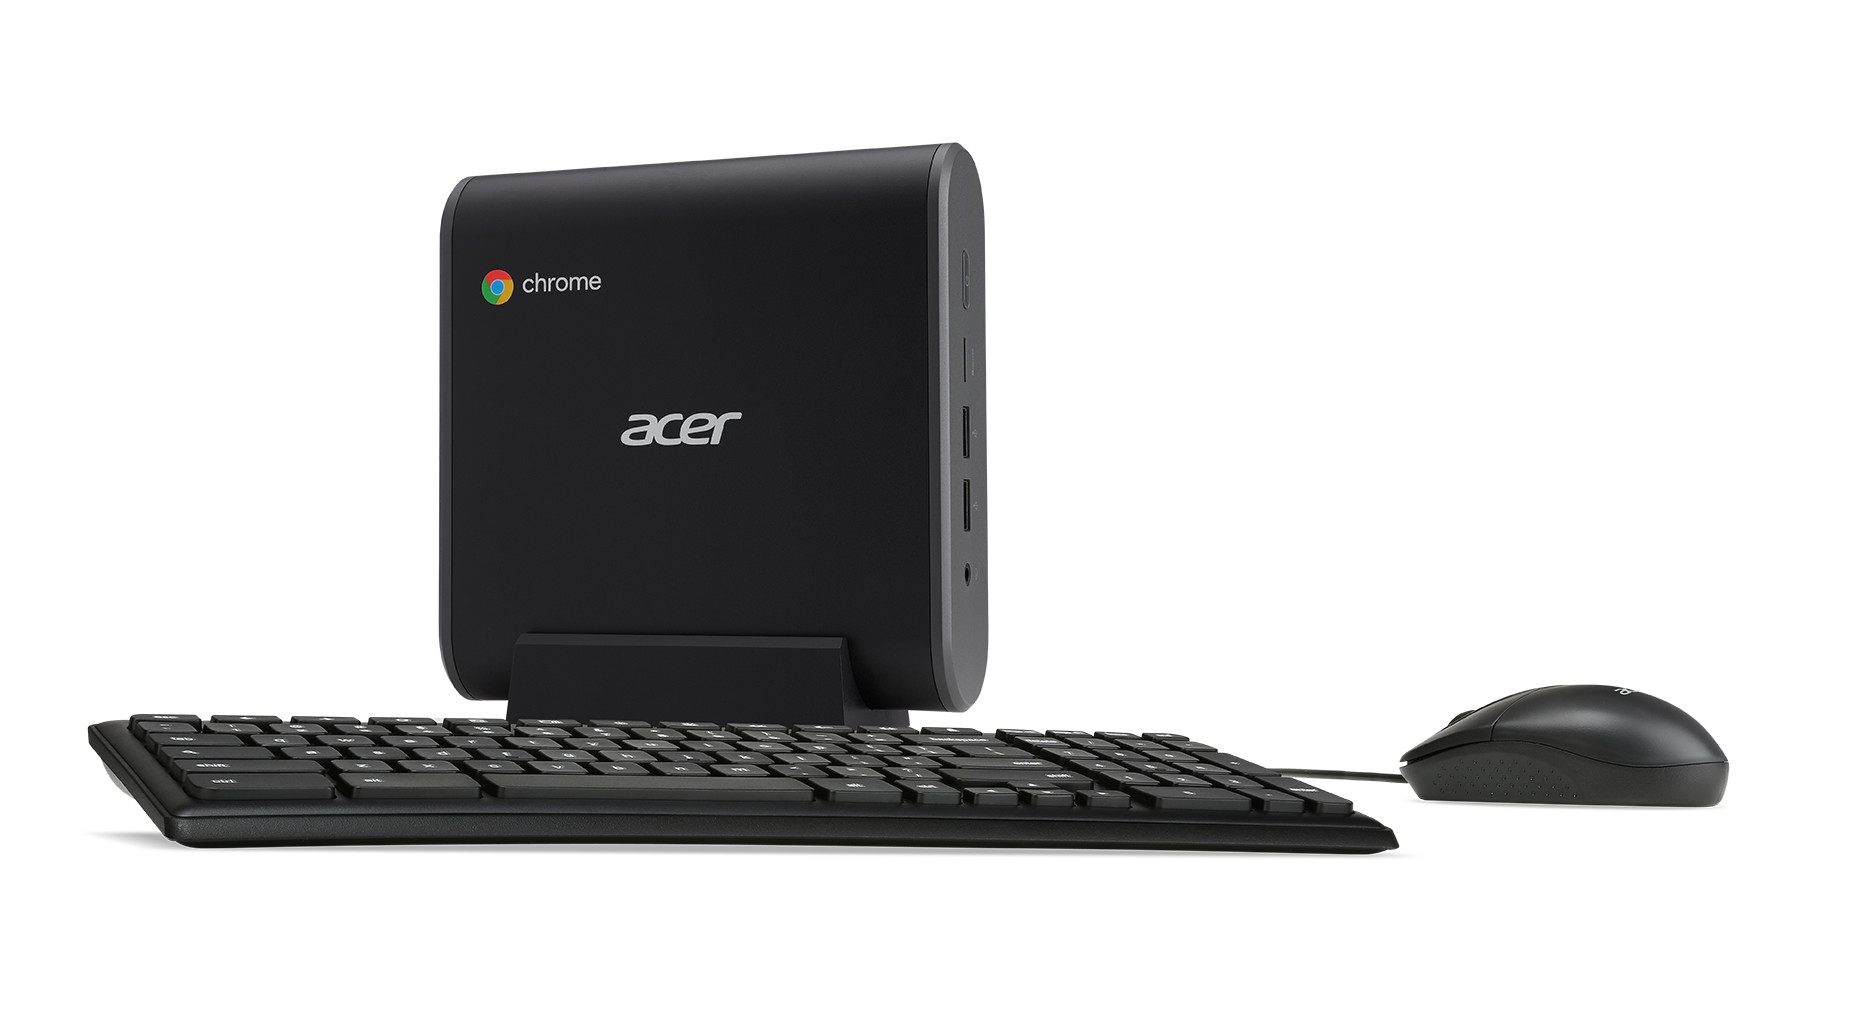 Acer's new $350 Chromebook is the MacBook Air successor we all need